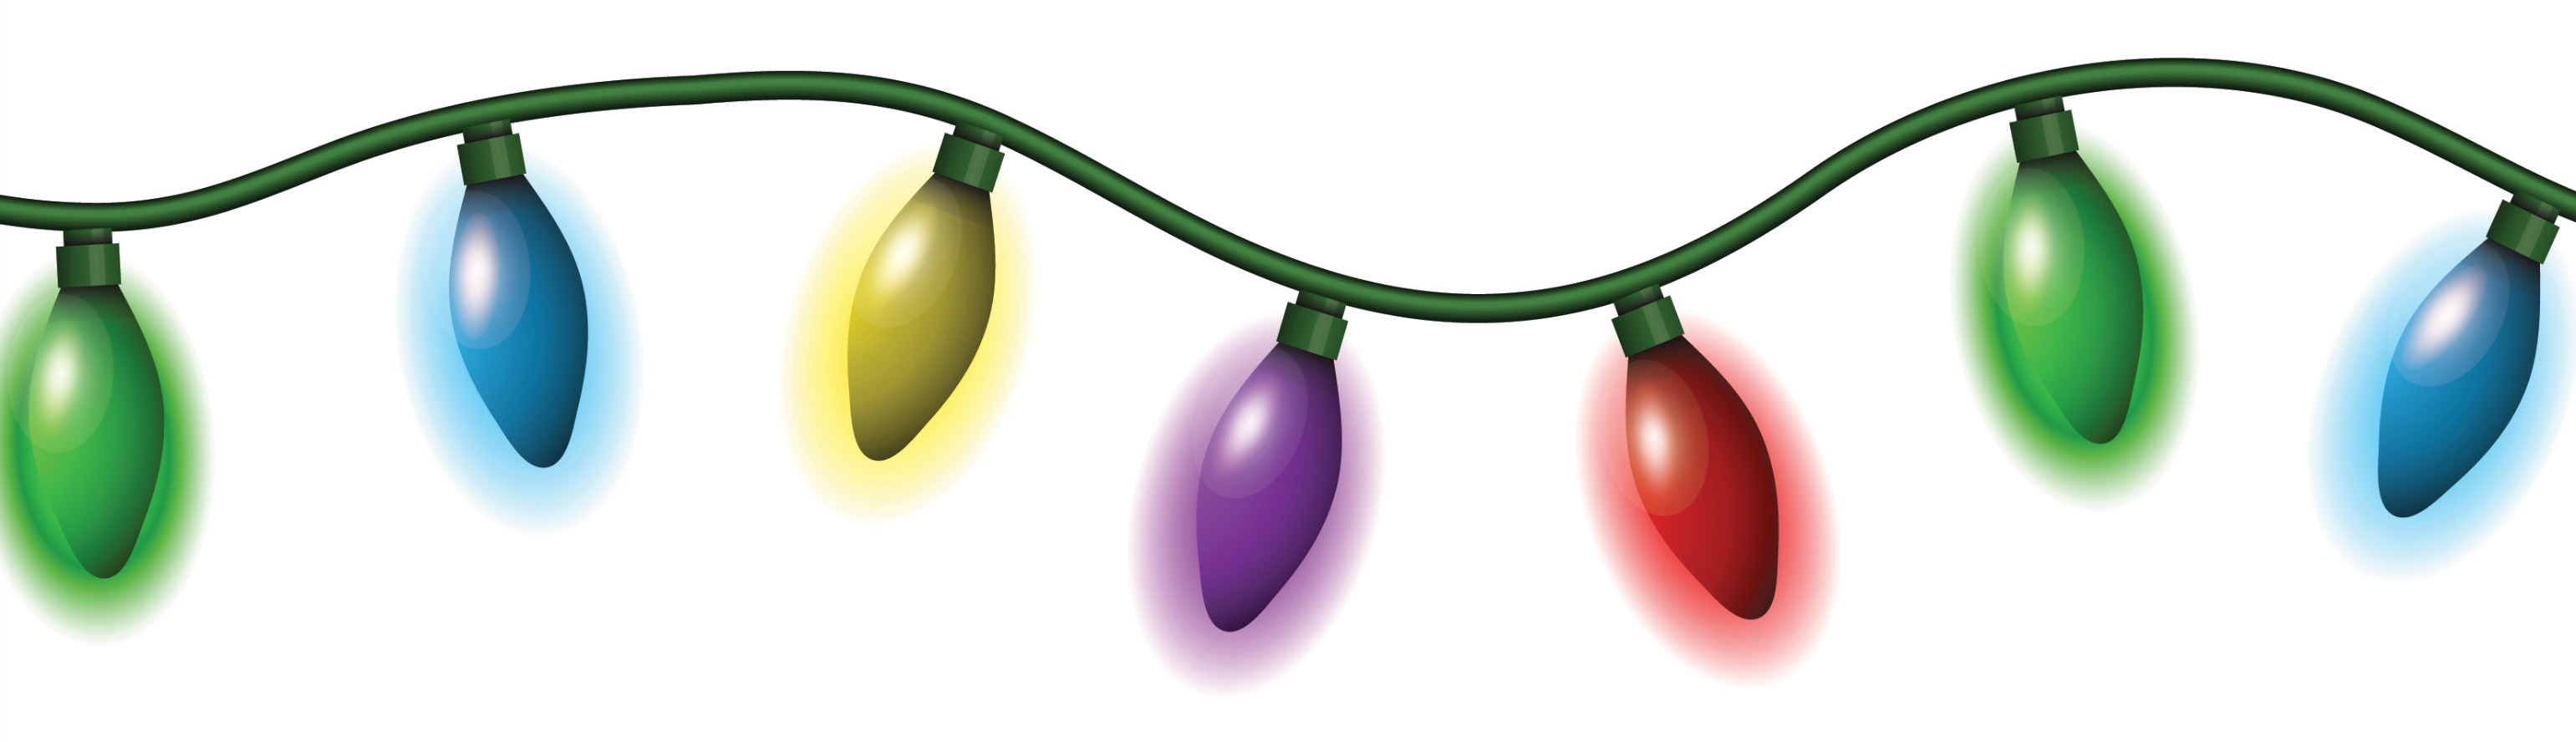 3082x888 Christmas Lights Clipart Christmas Lights Clipart